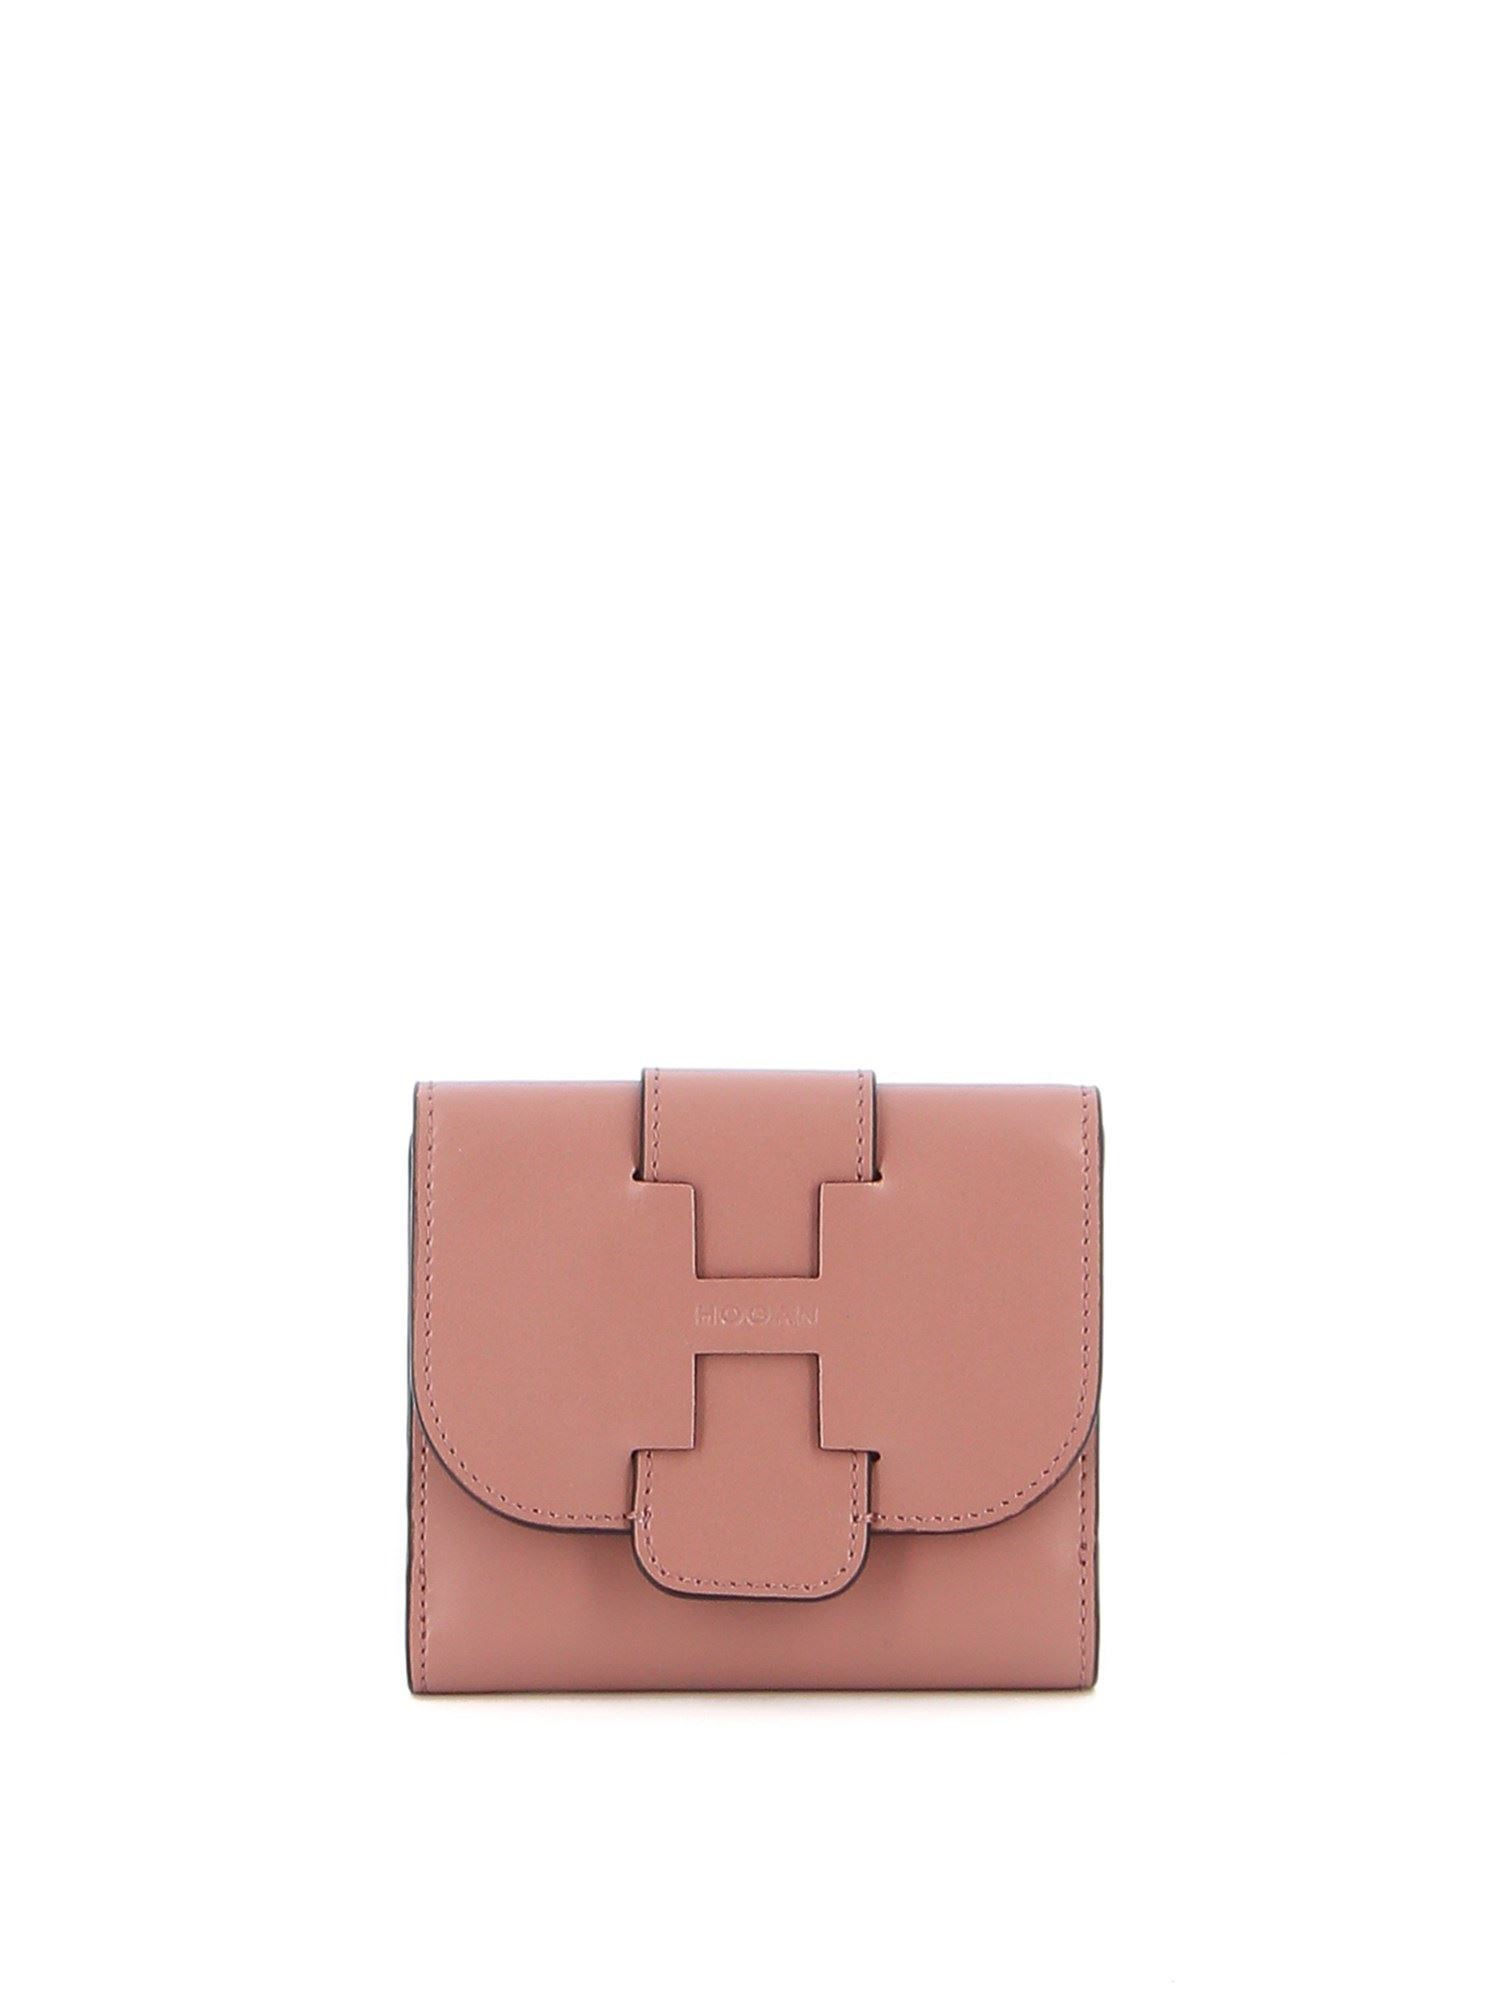 Hogan TRI-FOLD LEATHER WALLET IN PINK